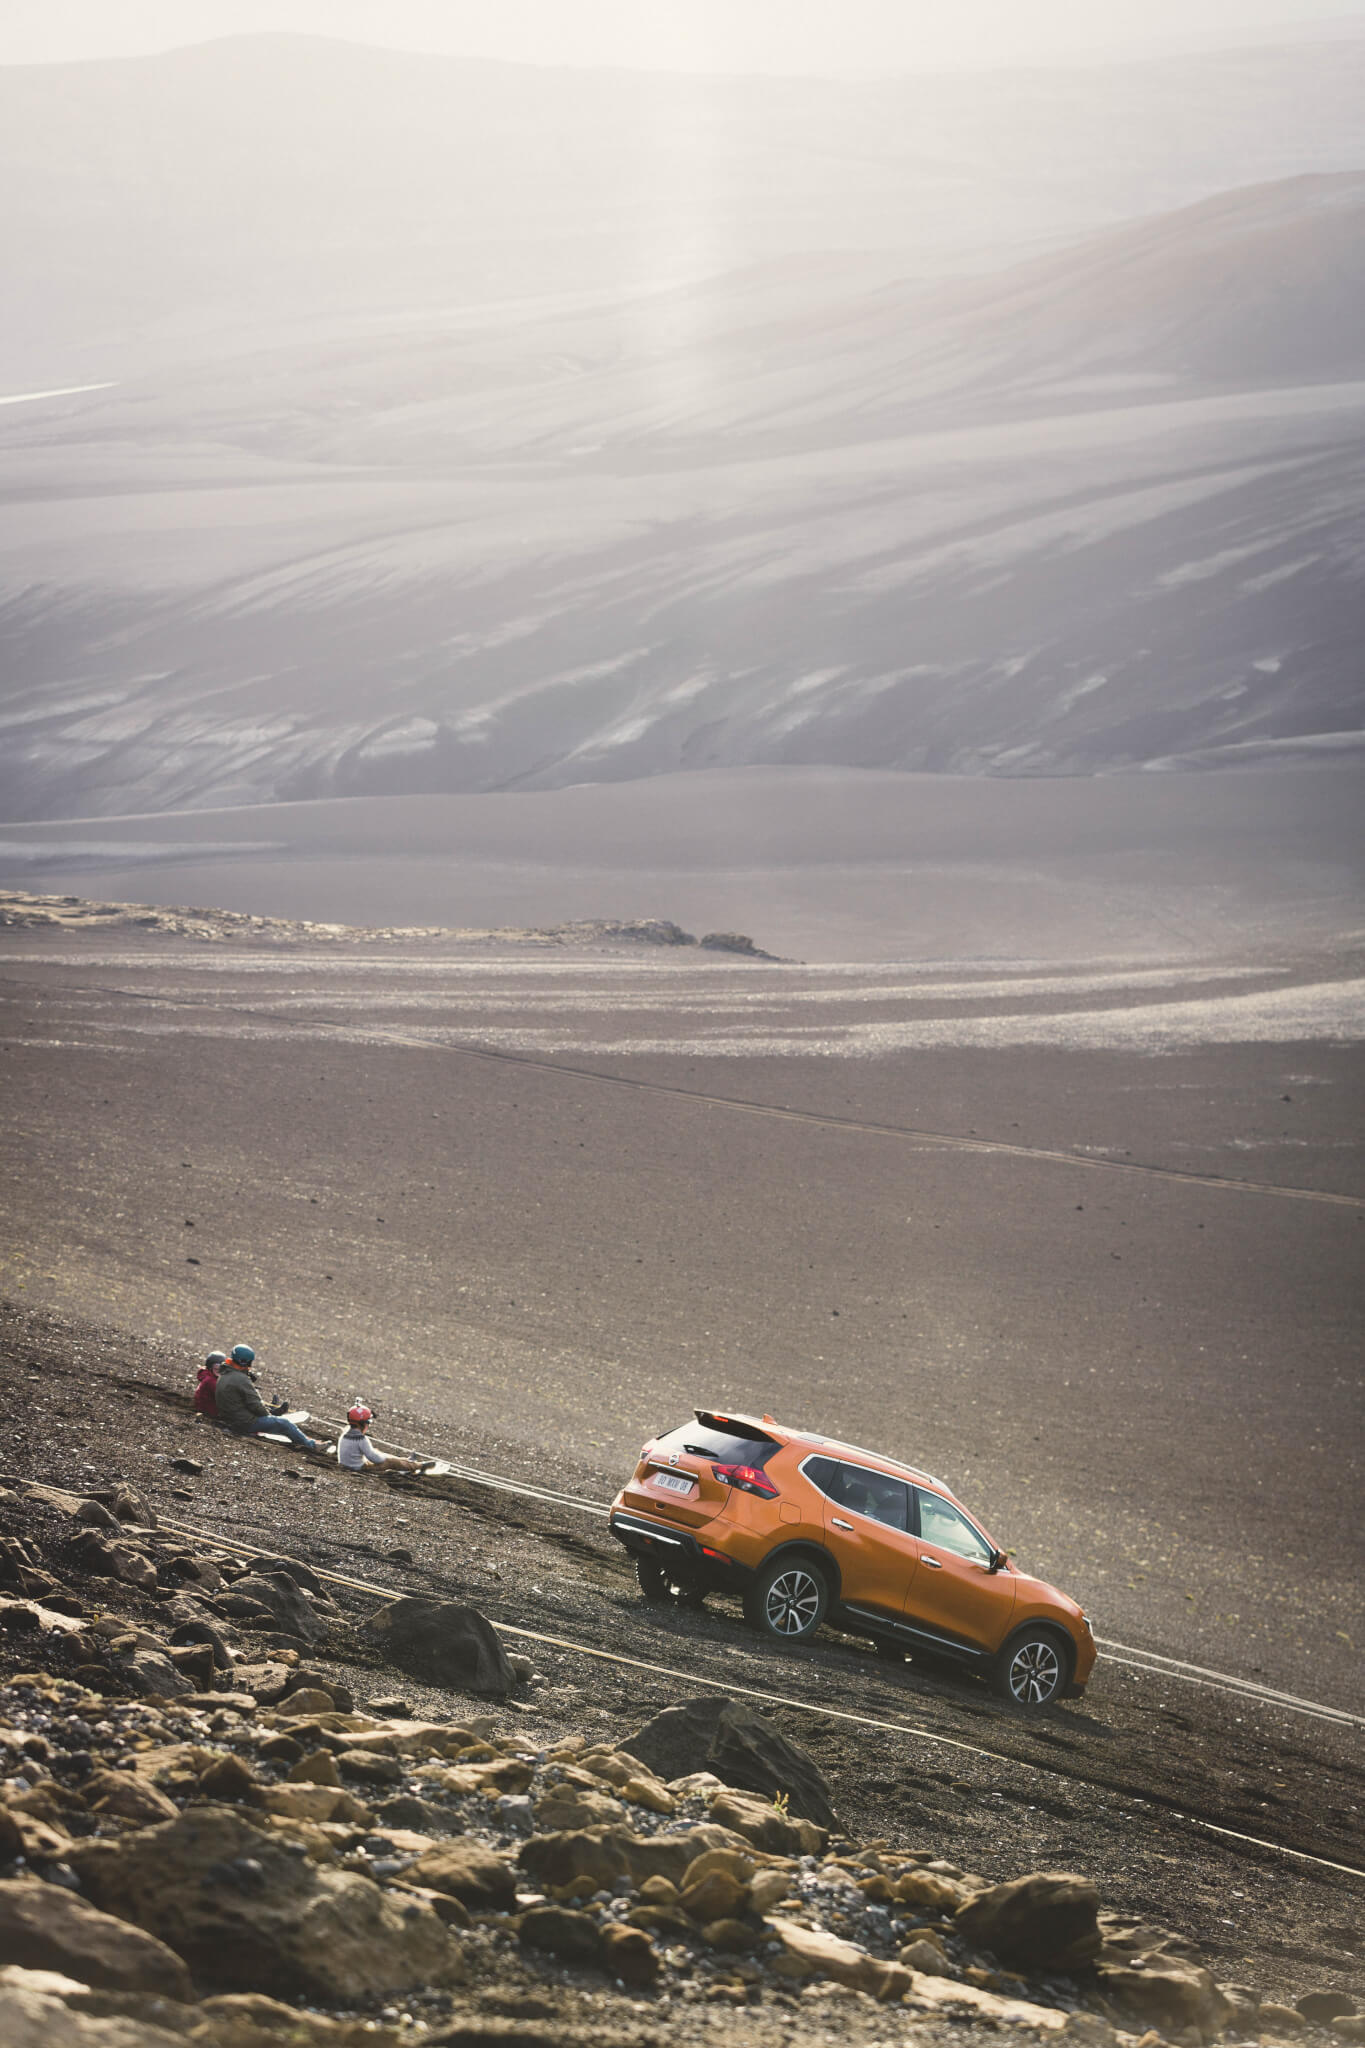 Photo du Tournage Nissan X-Trail en Islande par David Sultan